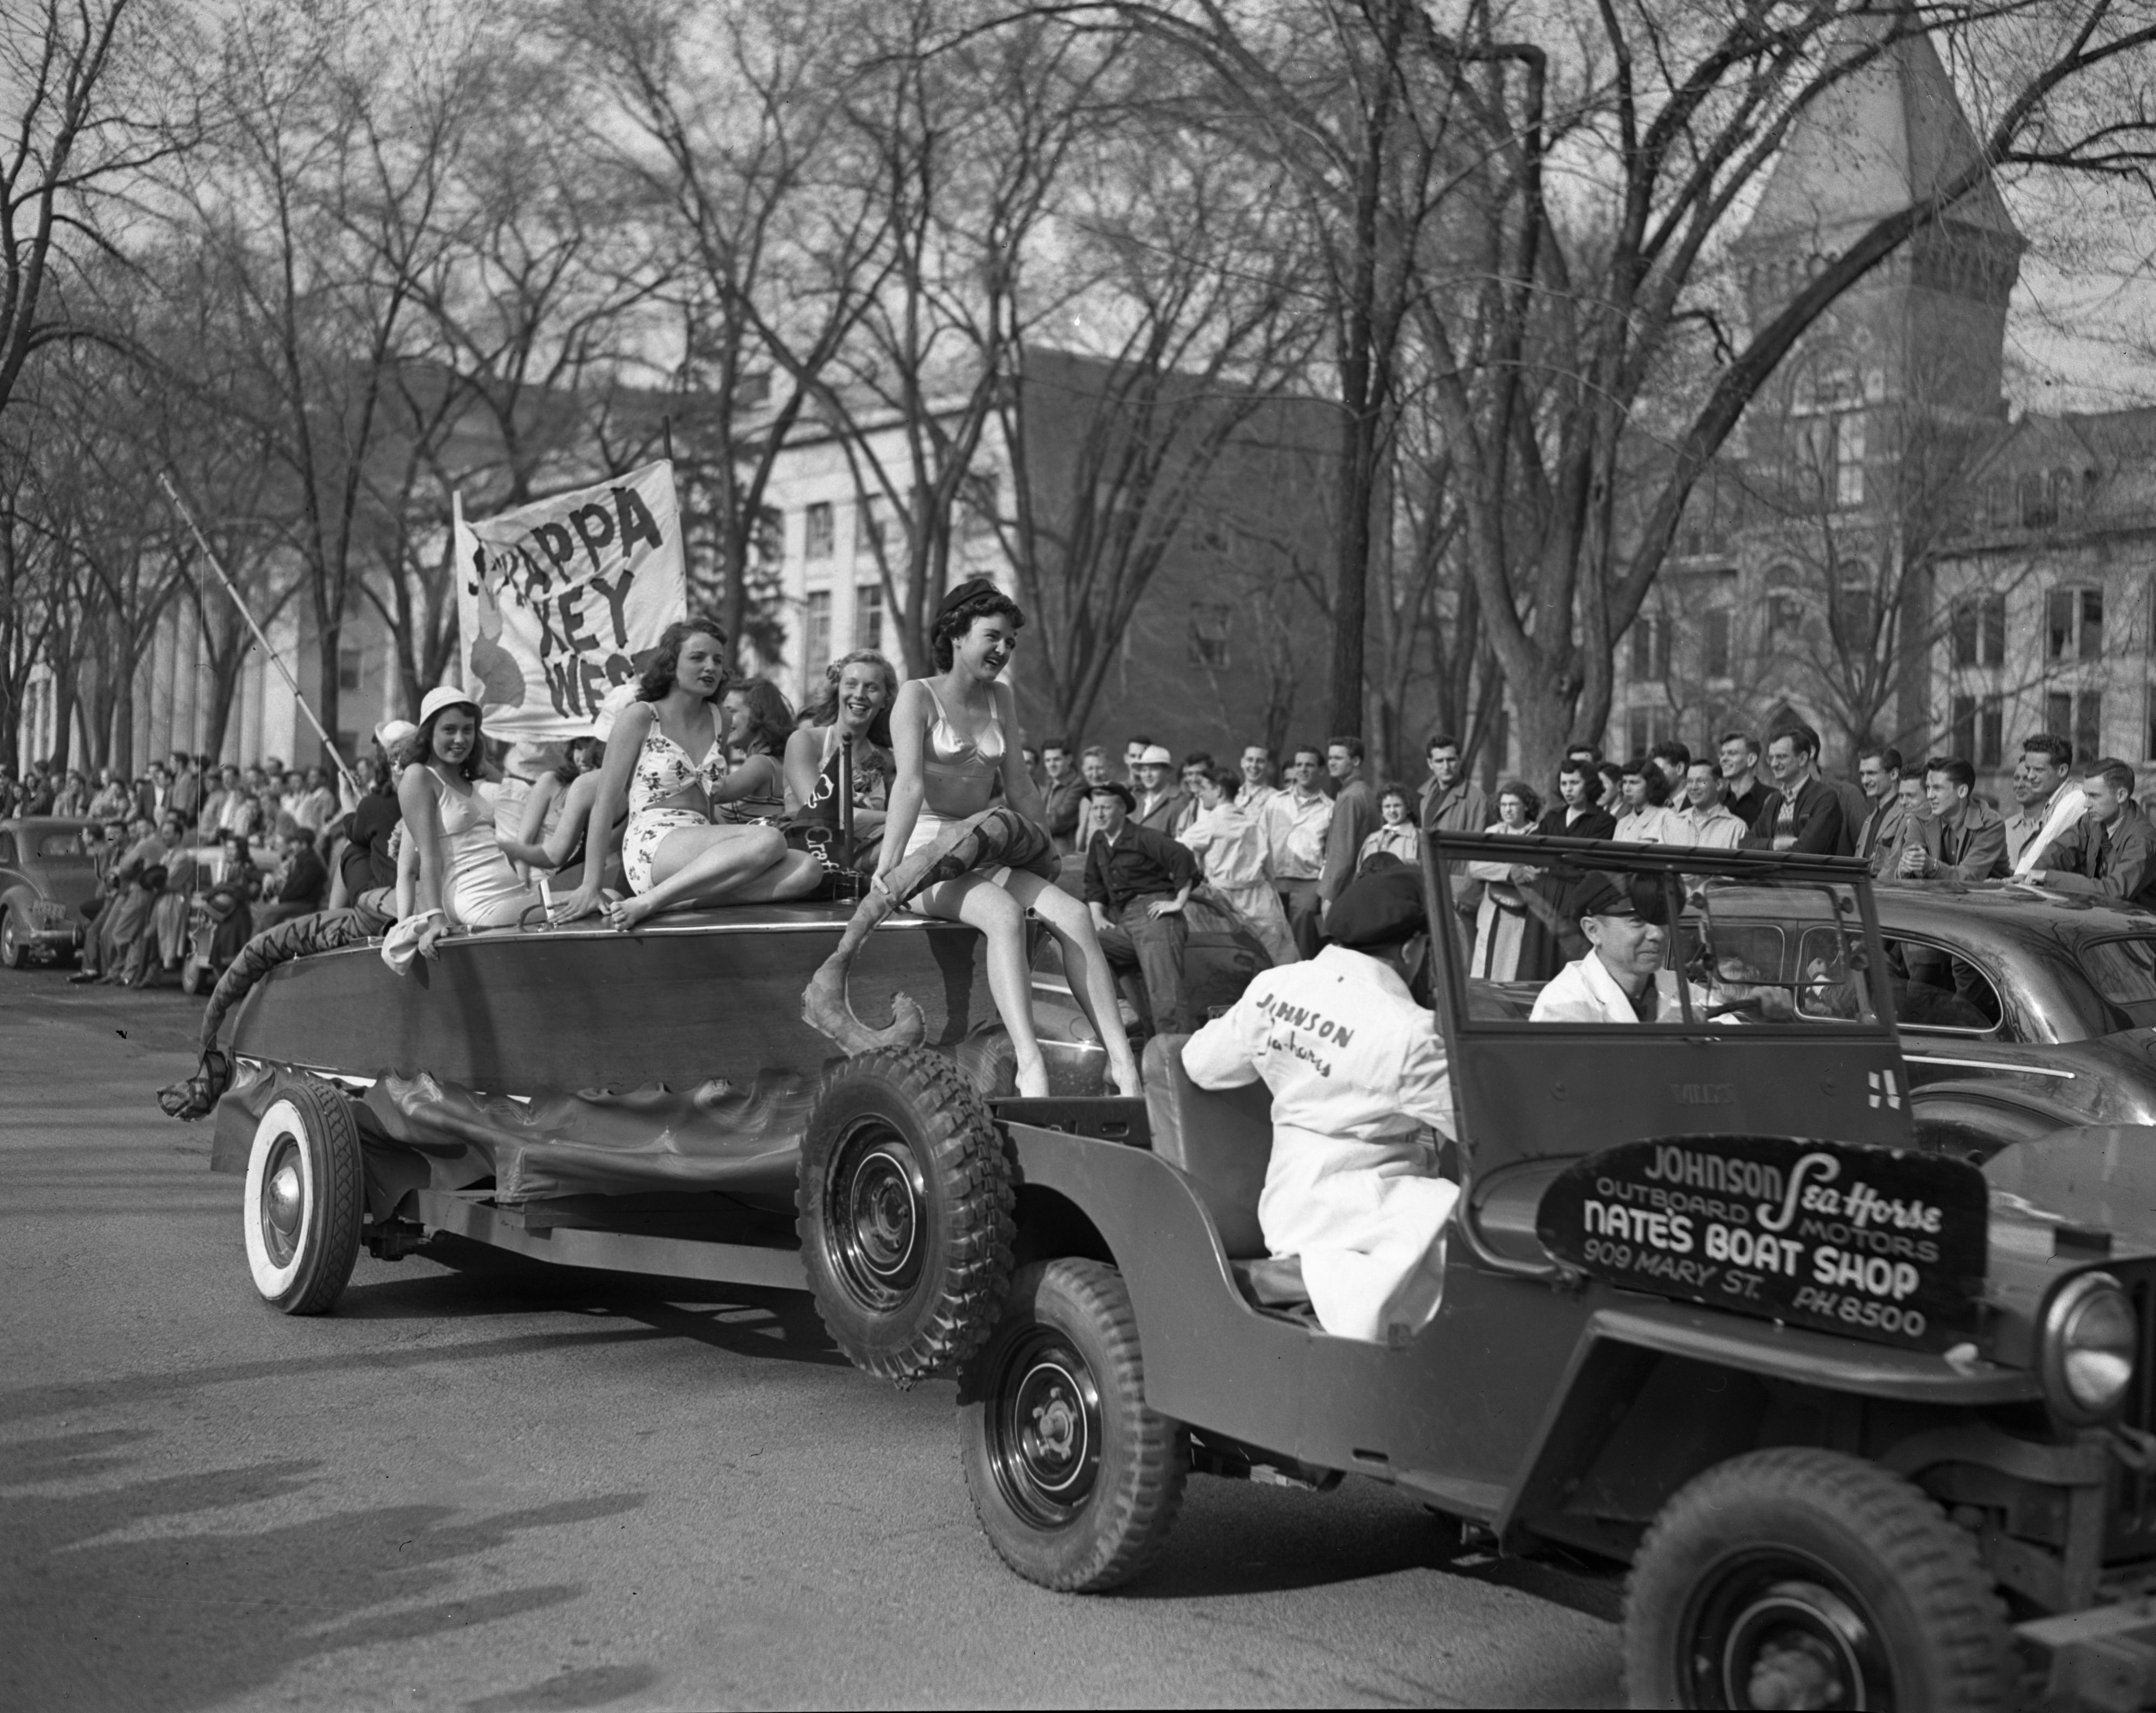 Nate's Boat Shop in the U-M Michigras Parade, April 1948 image